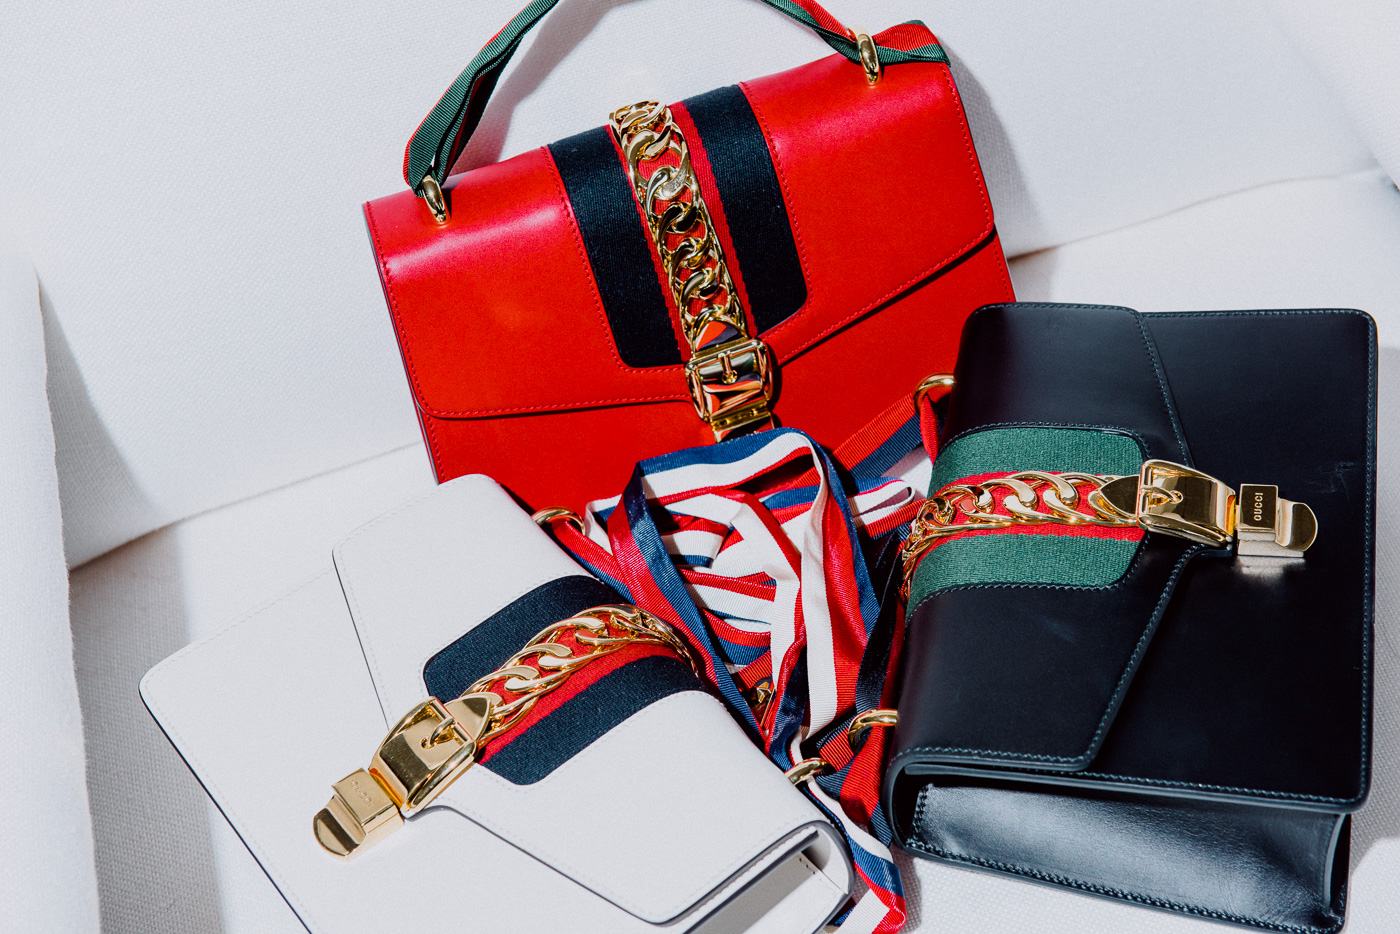 14c7eca3a52 A Day with Gucci Spring 2016 and the New Gucci Sylvie Bag - PurseBlog